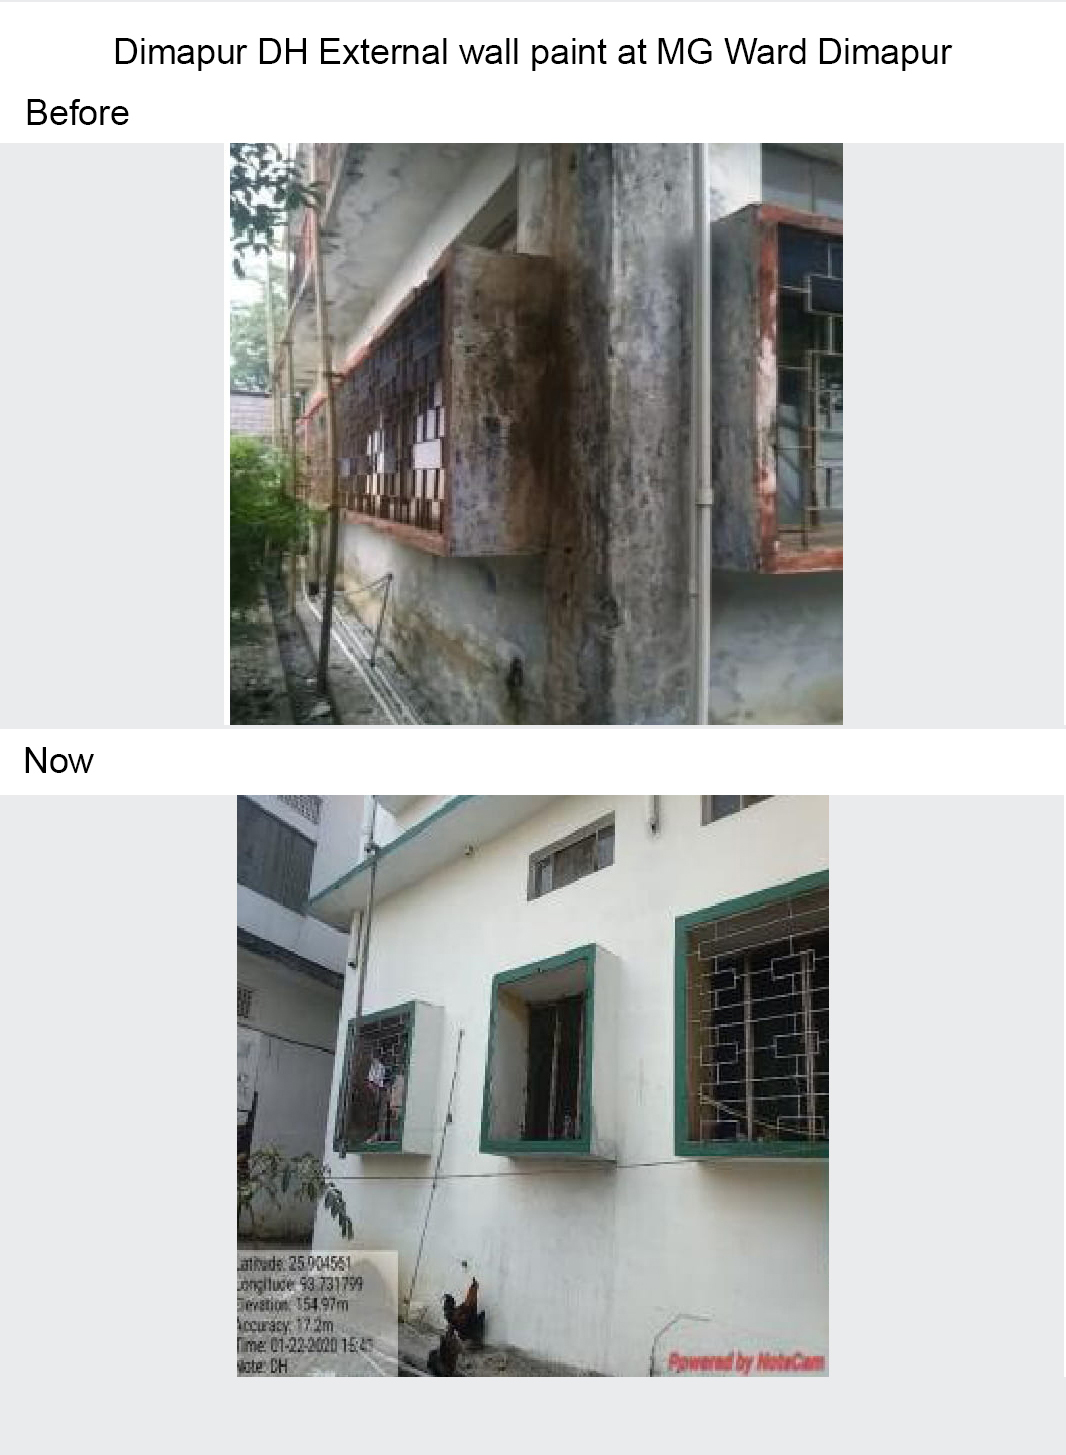 Dimapur-DH-External-wall-paint-at-MG-Ward-Dimapur